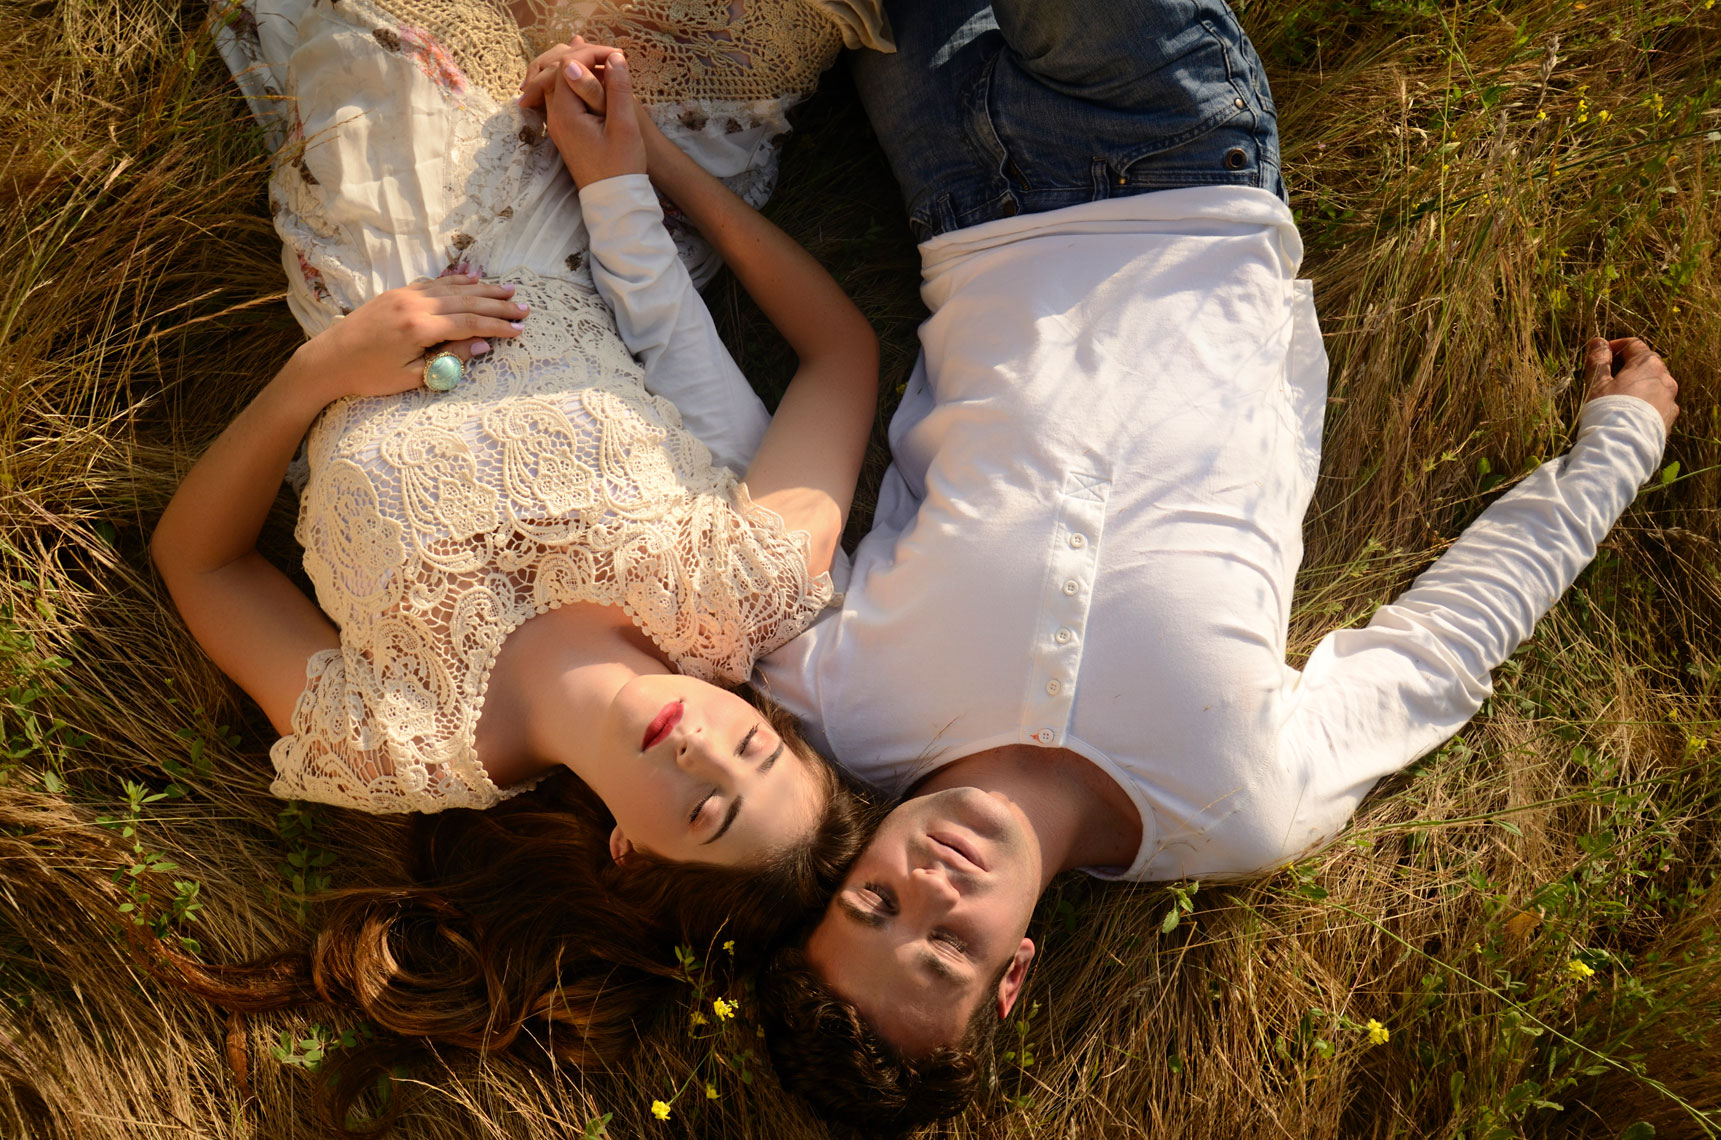 young-romantic-couple-holding-hands-sleeping-in-overgrown-grassy-field-by-lifestyle-photographer-Joe-Atlas.